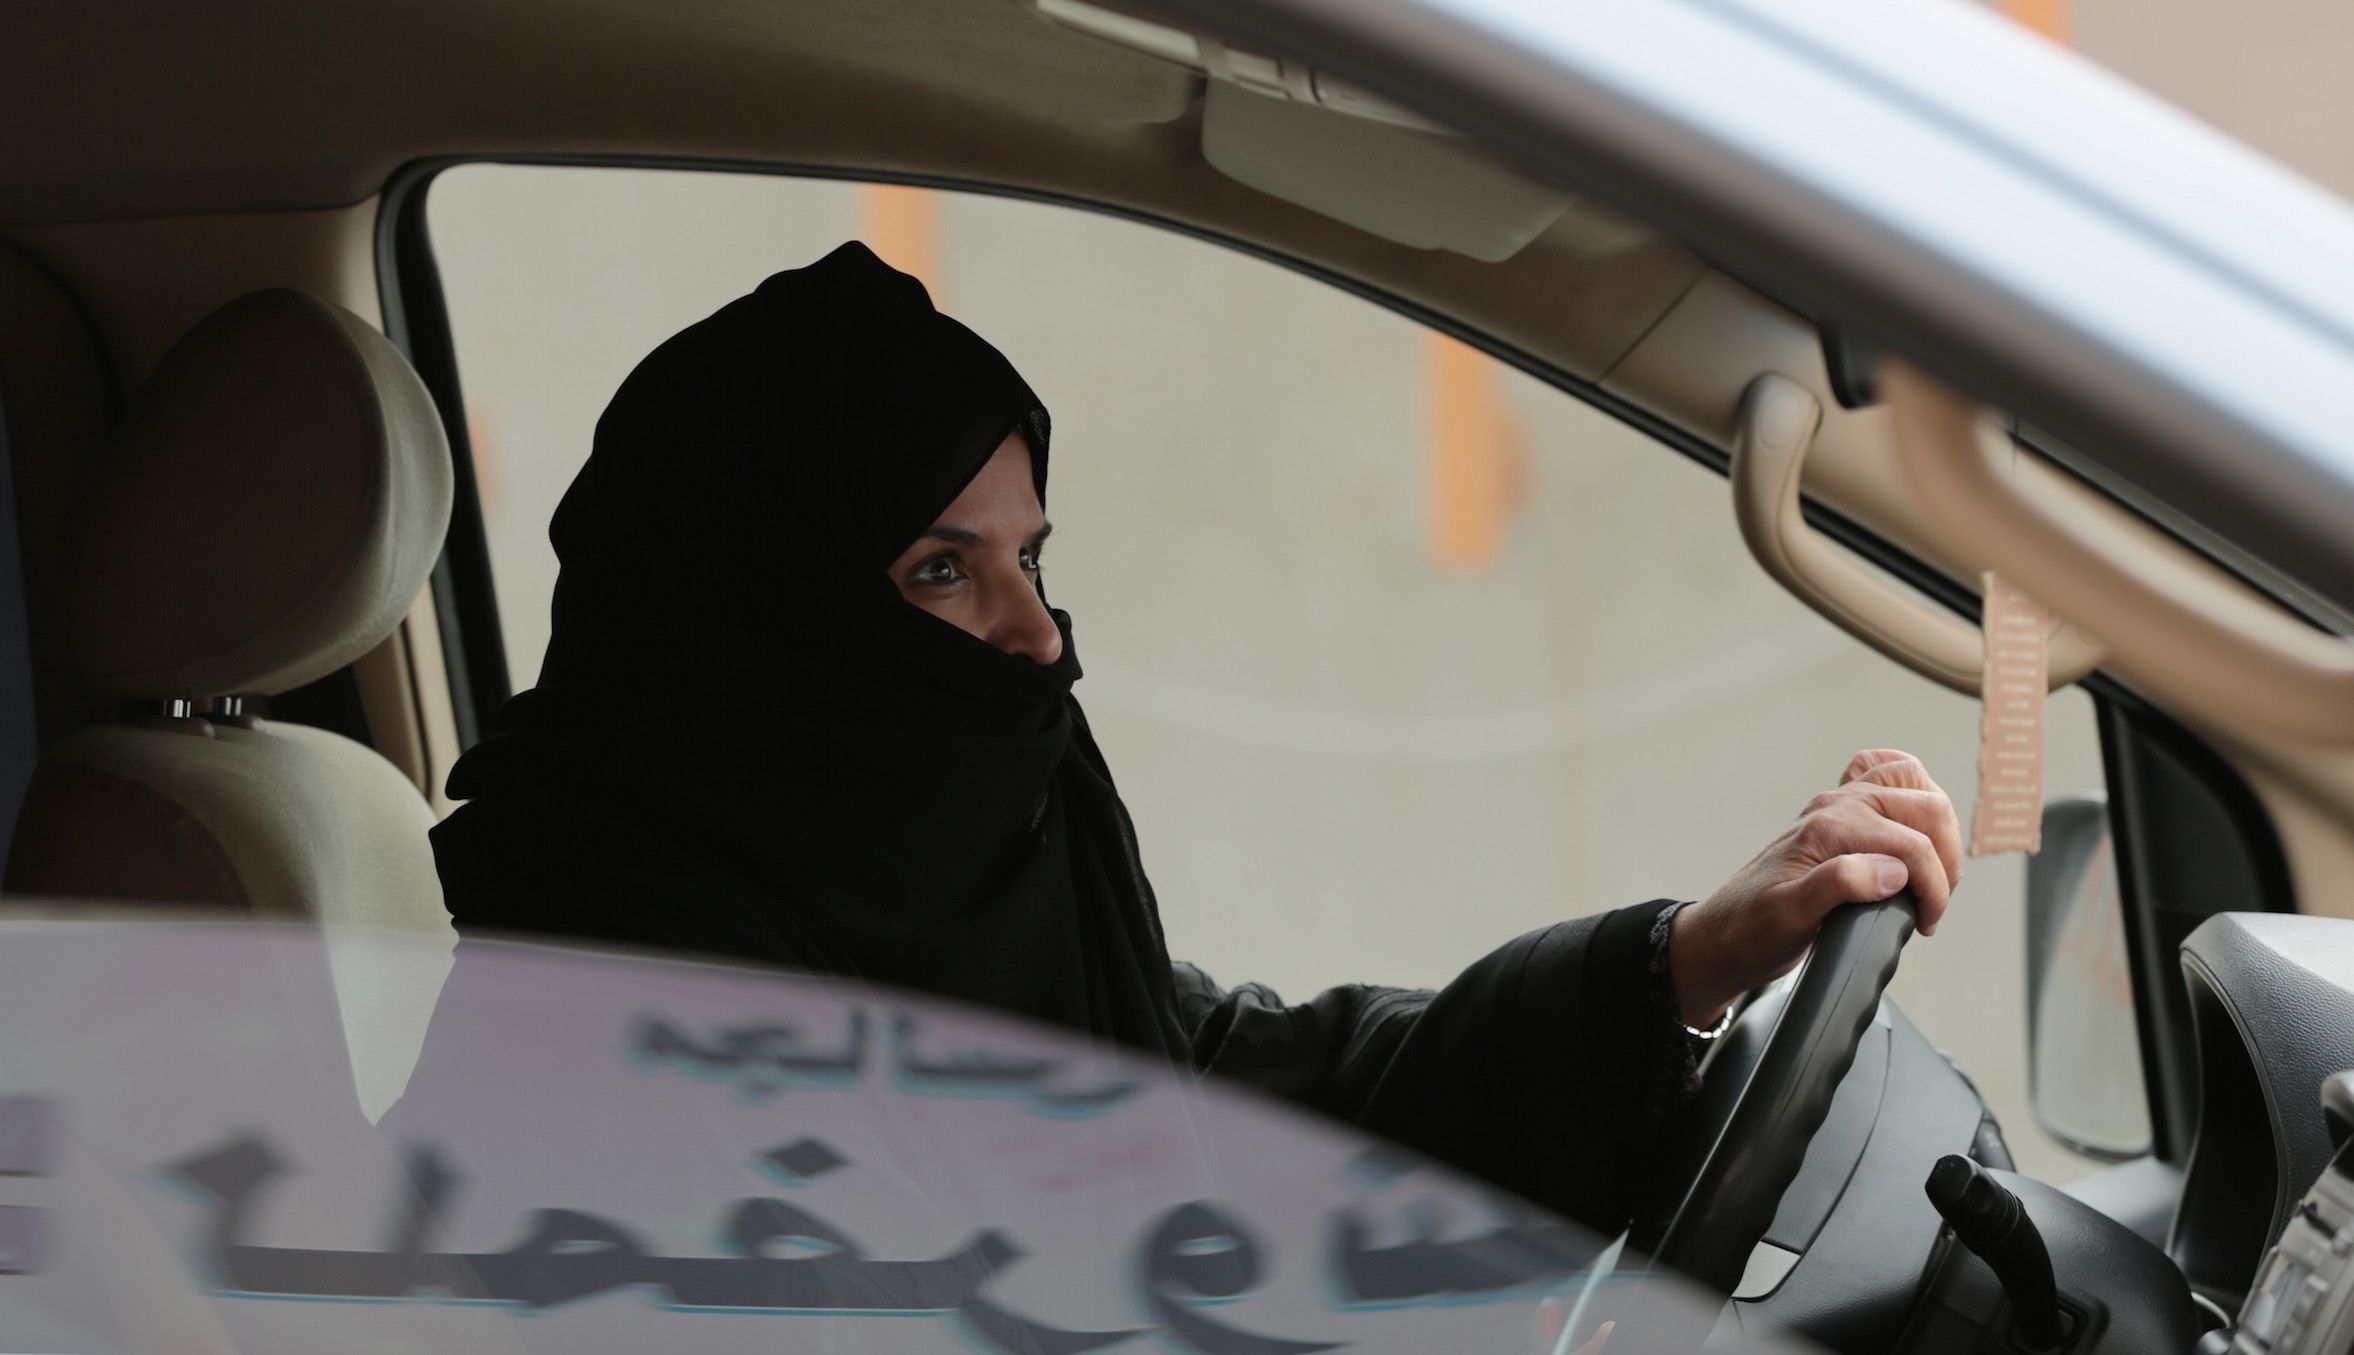 FILE - In this Saturday, March 29, 2014 file photo, Aziza Yousef drives a car on a highway in Riyadh, Saudi Arabia, as part of a campaign to defy Saudi Arabia's ban on women driving. Single Saudi women stand at the center of a societal pivot. On the one hand, the kingdom has increasingly encouraged women to graduate from college and enter the workforce. On the other hand, it still requires that they adhere to laws that give men final say over their lives. Over the past three decades until around 2009, the number of Saudi women working was less than 50,000, but is now more than 400,000, according to the Labor Ministry.  (AP Photo/Hasan Jamali, File)